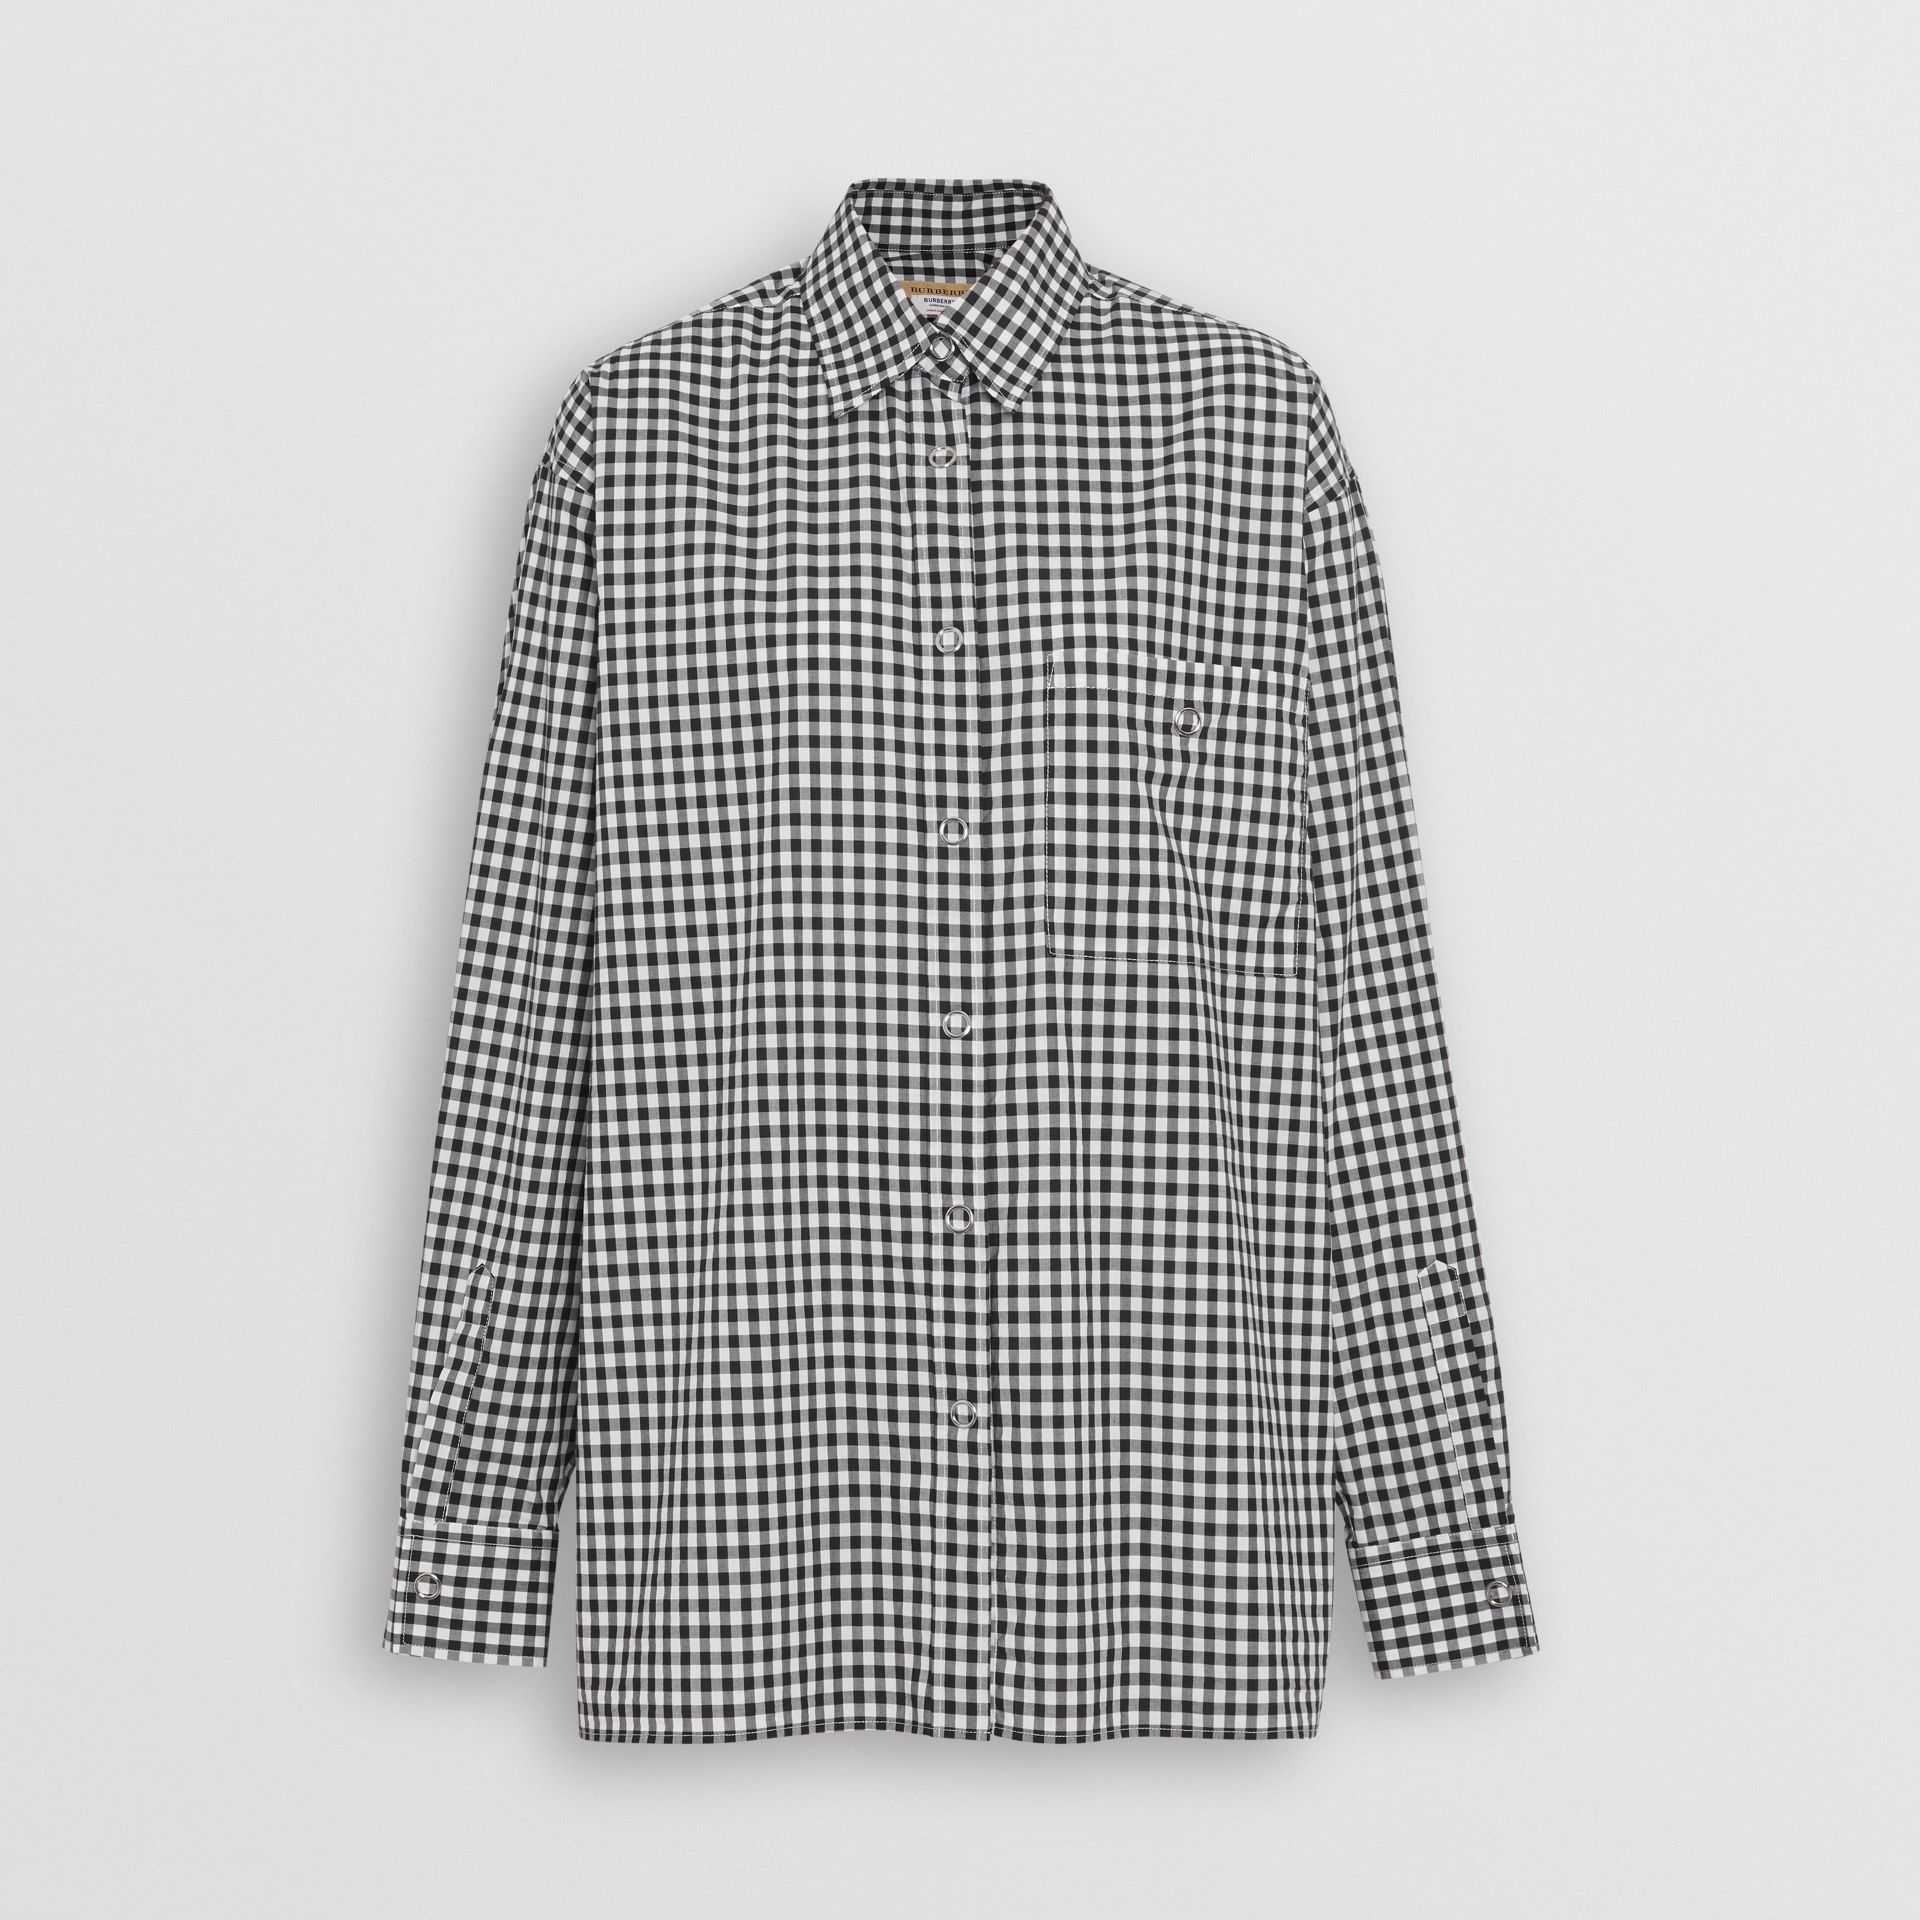 Puff-sleeve Gingham Cotton Shirt in Black/white - Women | Burberry - gallery image 3